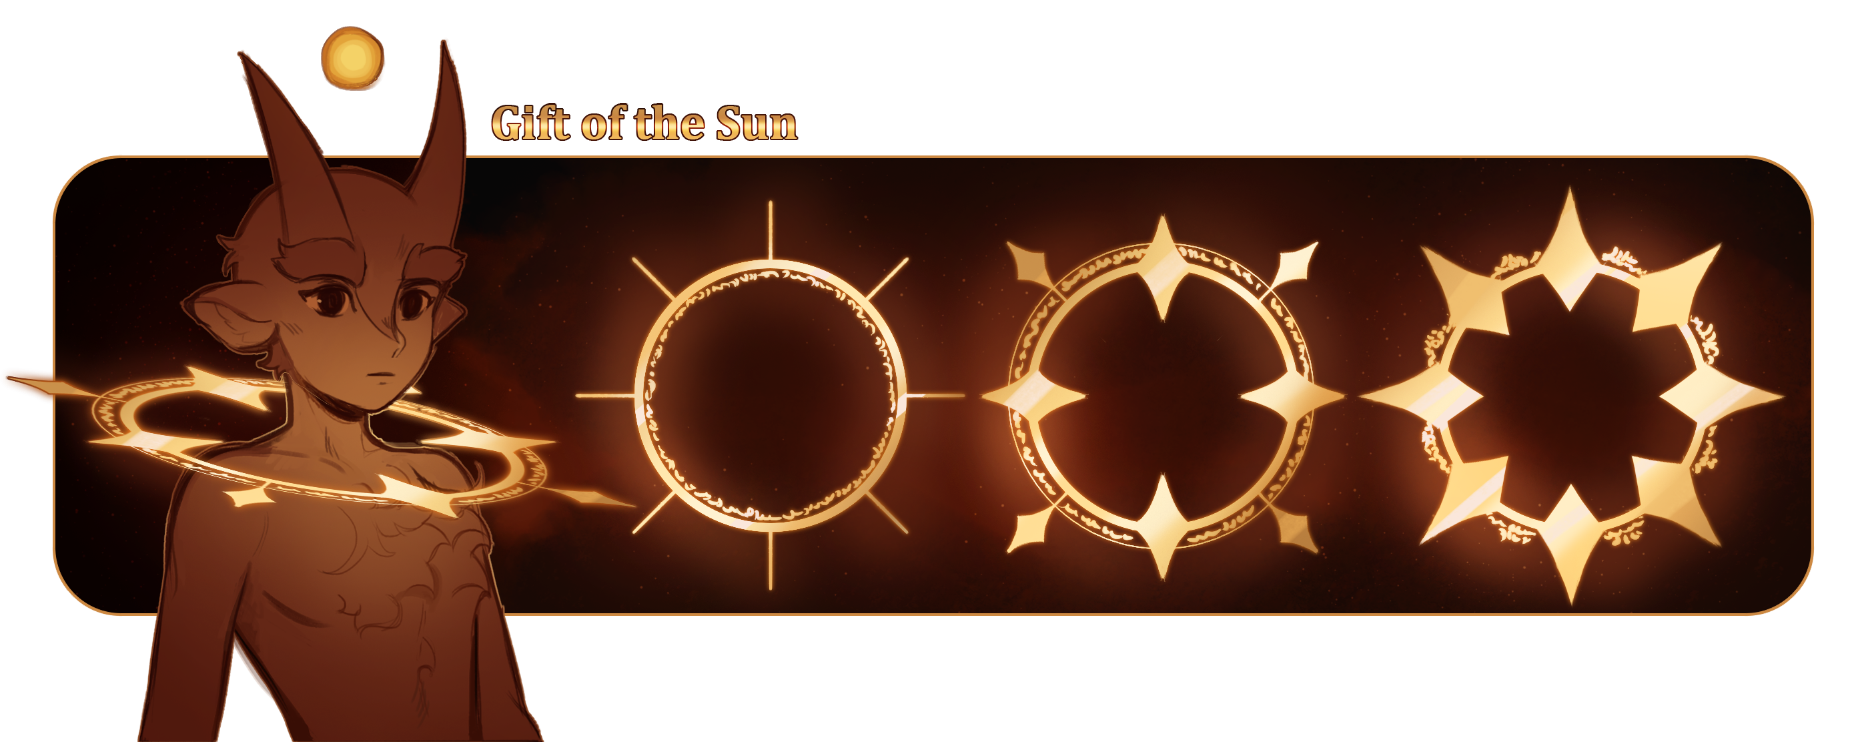 Gift Of The Sun by Browbird